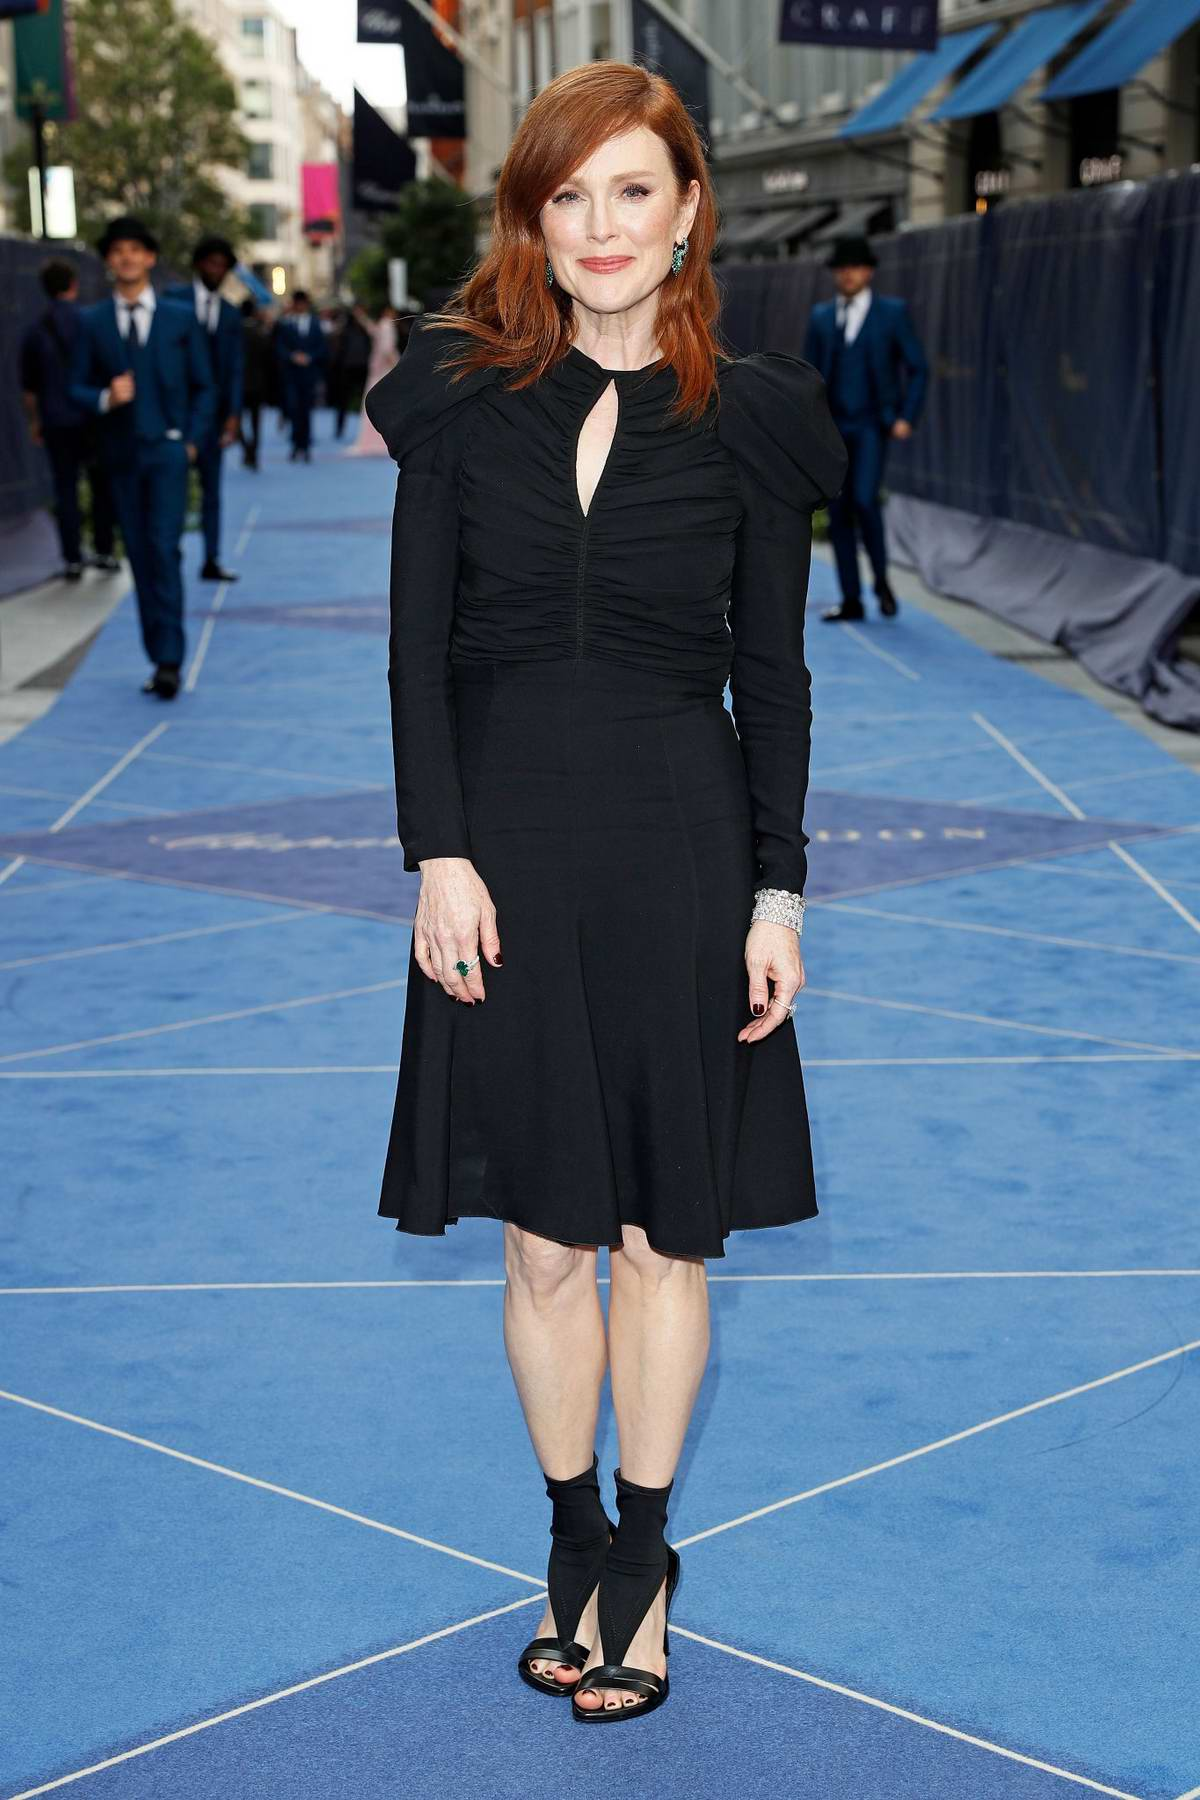 Julianne Moore attends the Chopard Bond Street Boutique Re-Opening in London, UK